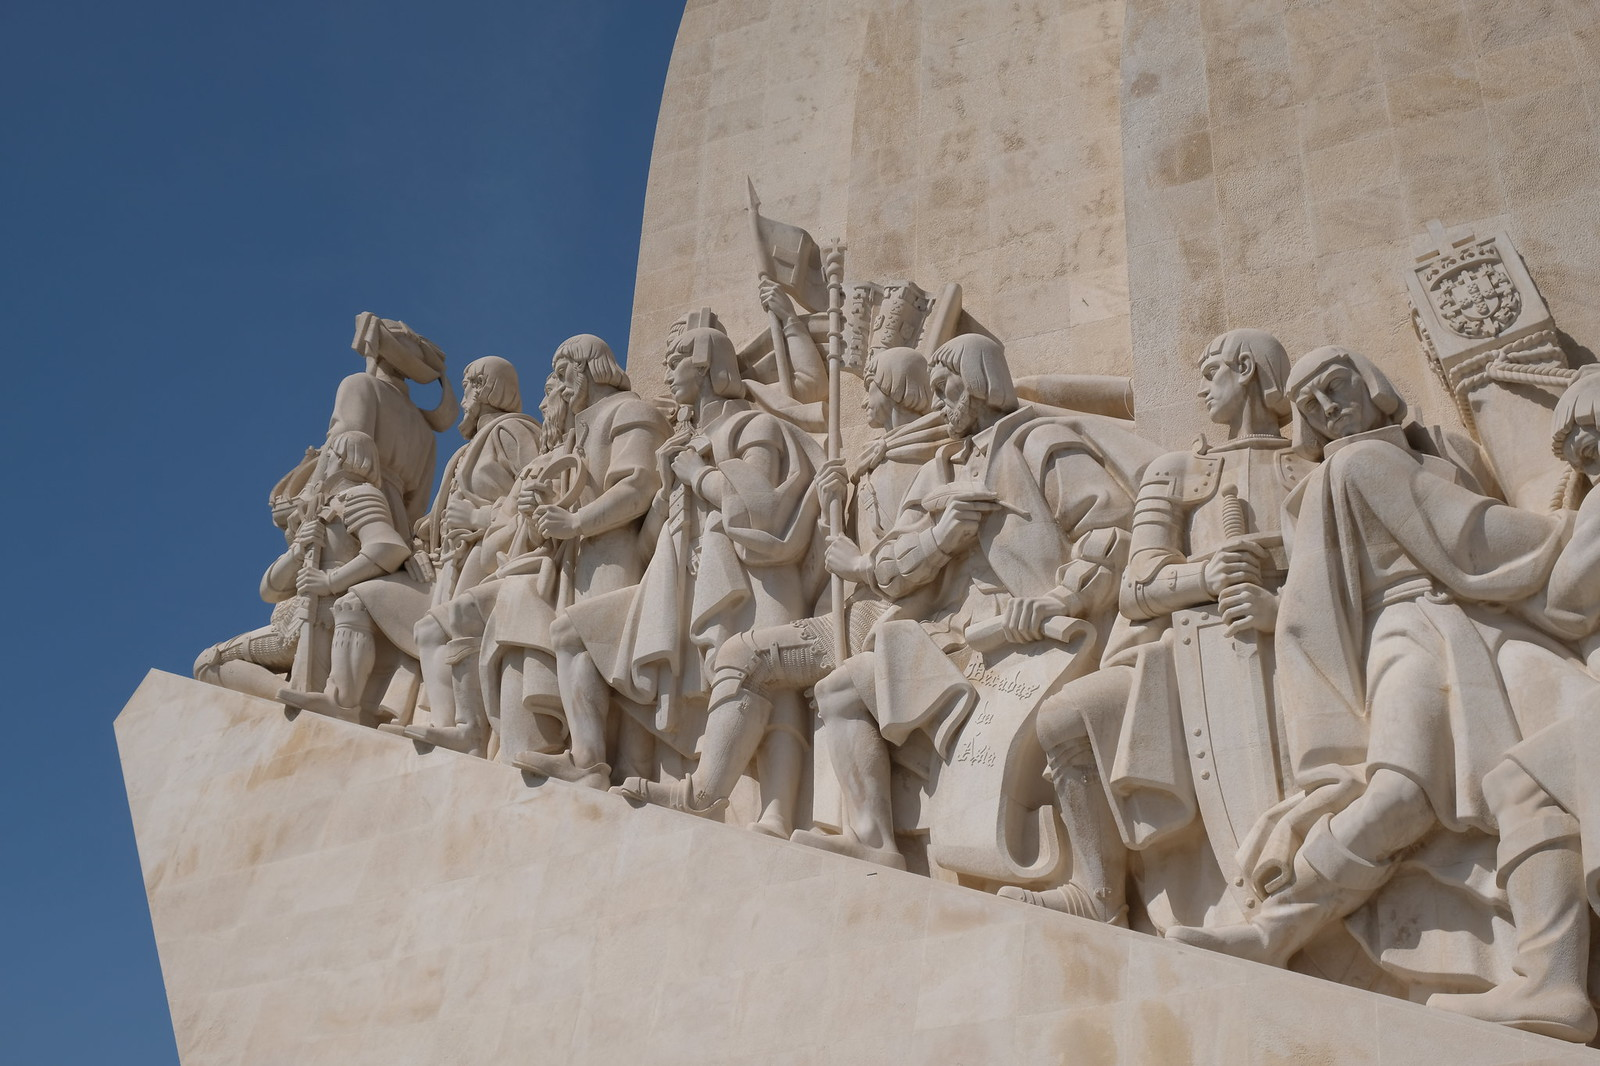 Monument to the Discoveries | One Day in Lisbon